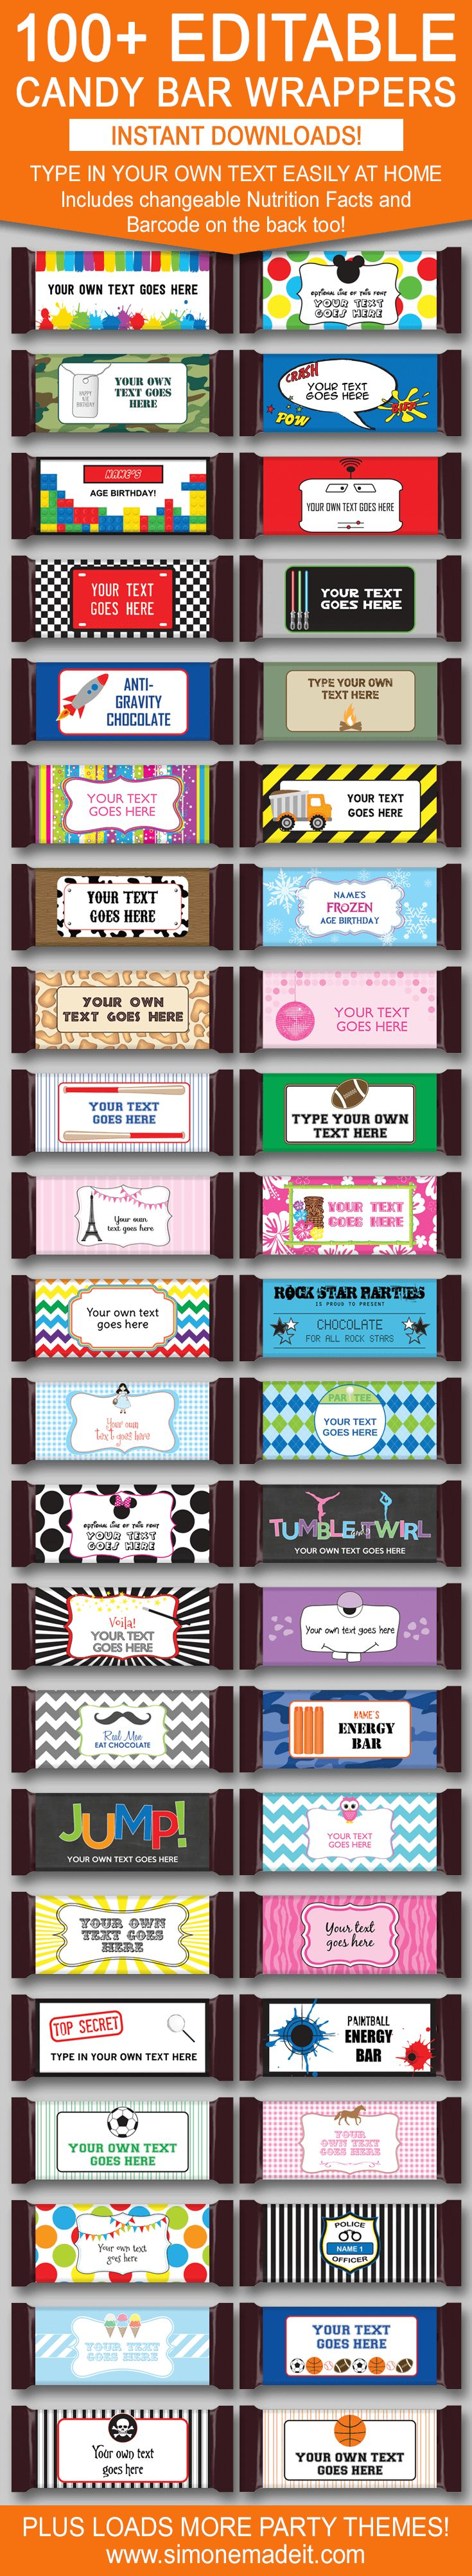 Personalized Candy Bar Wrapper Template Free from i.pinimg.com